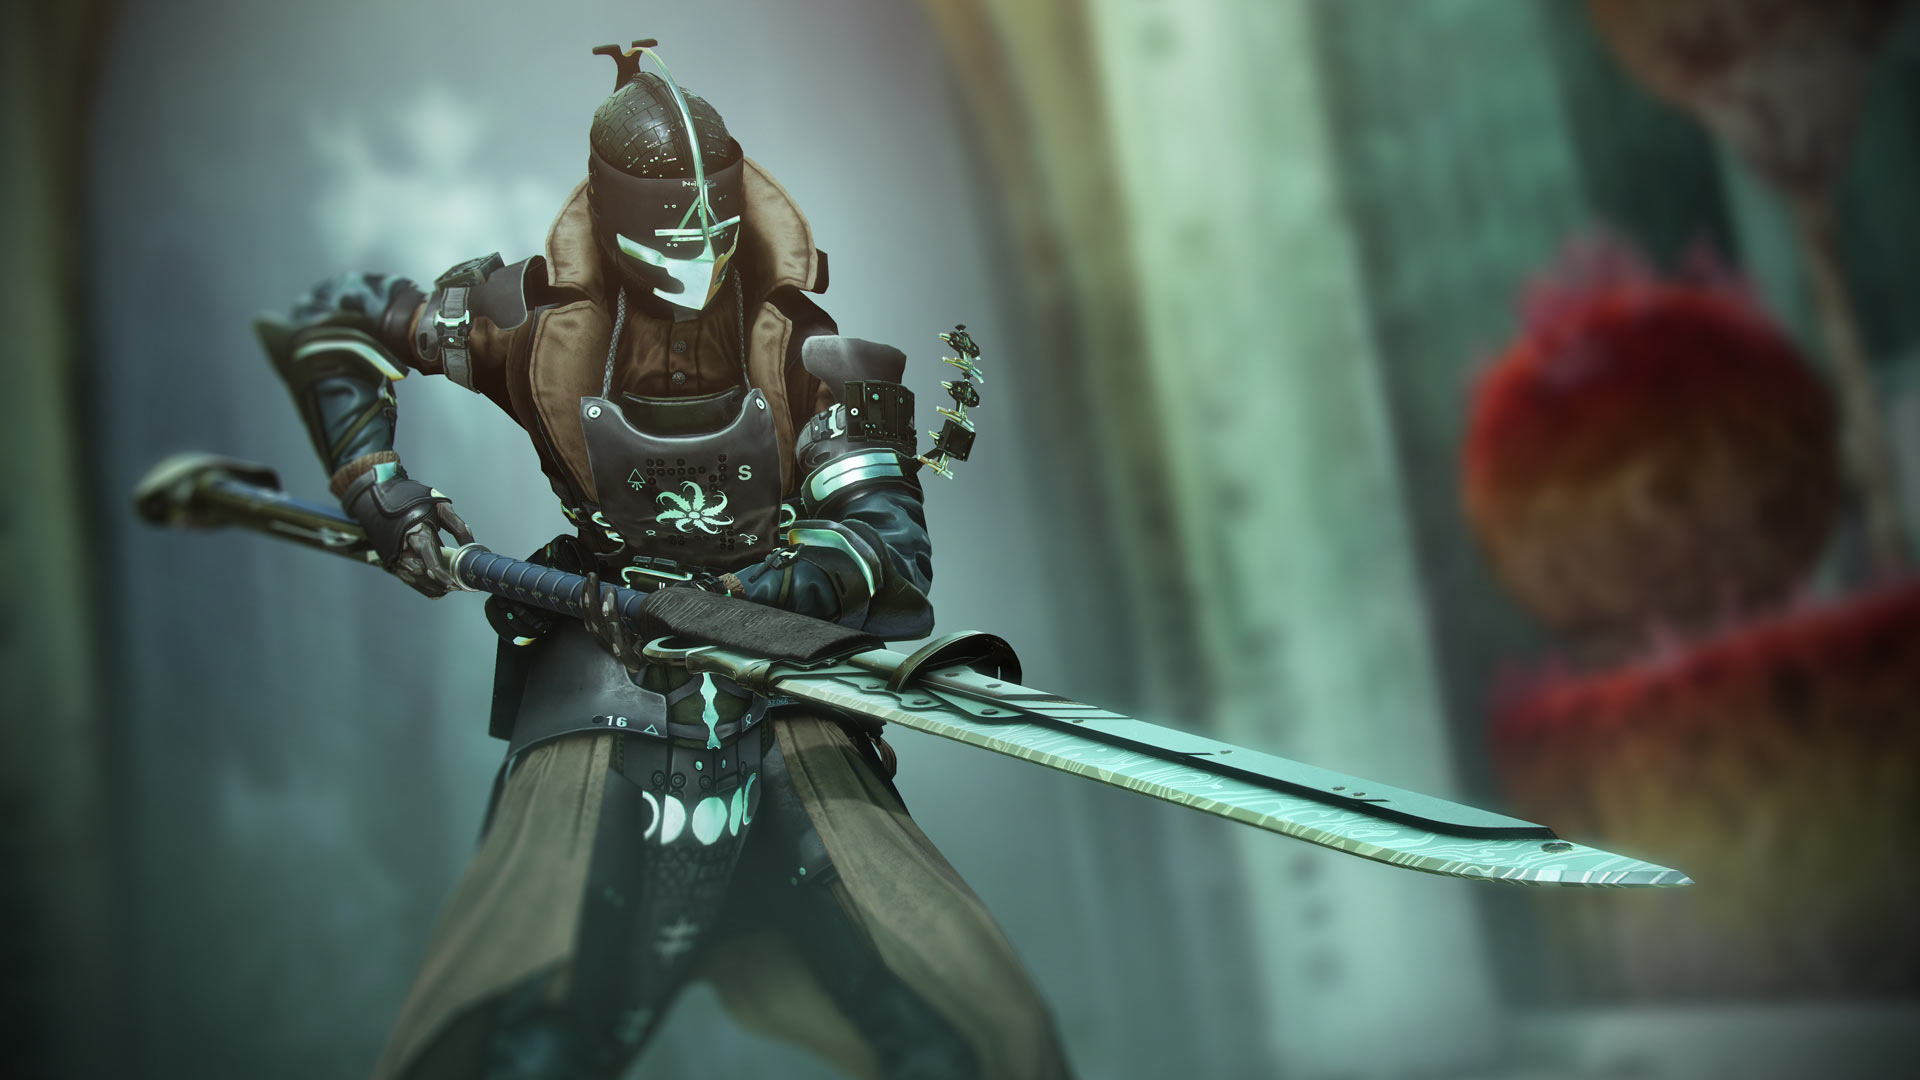 The Glaive weapon type in Destiny 2